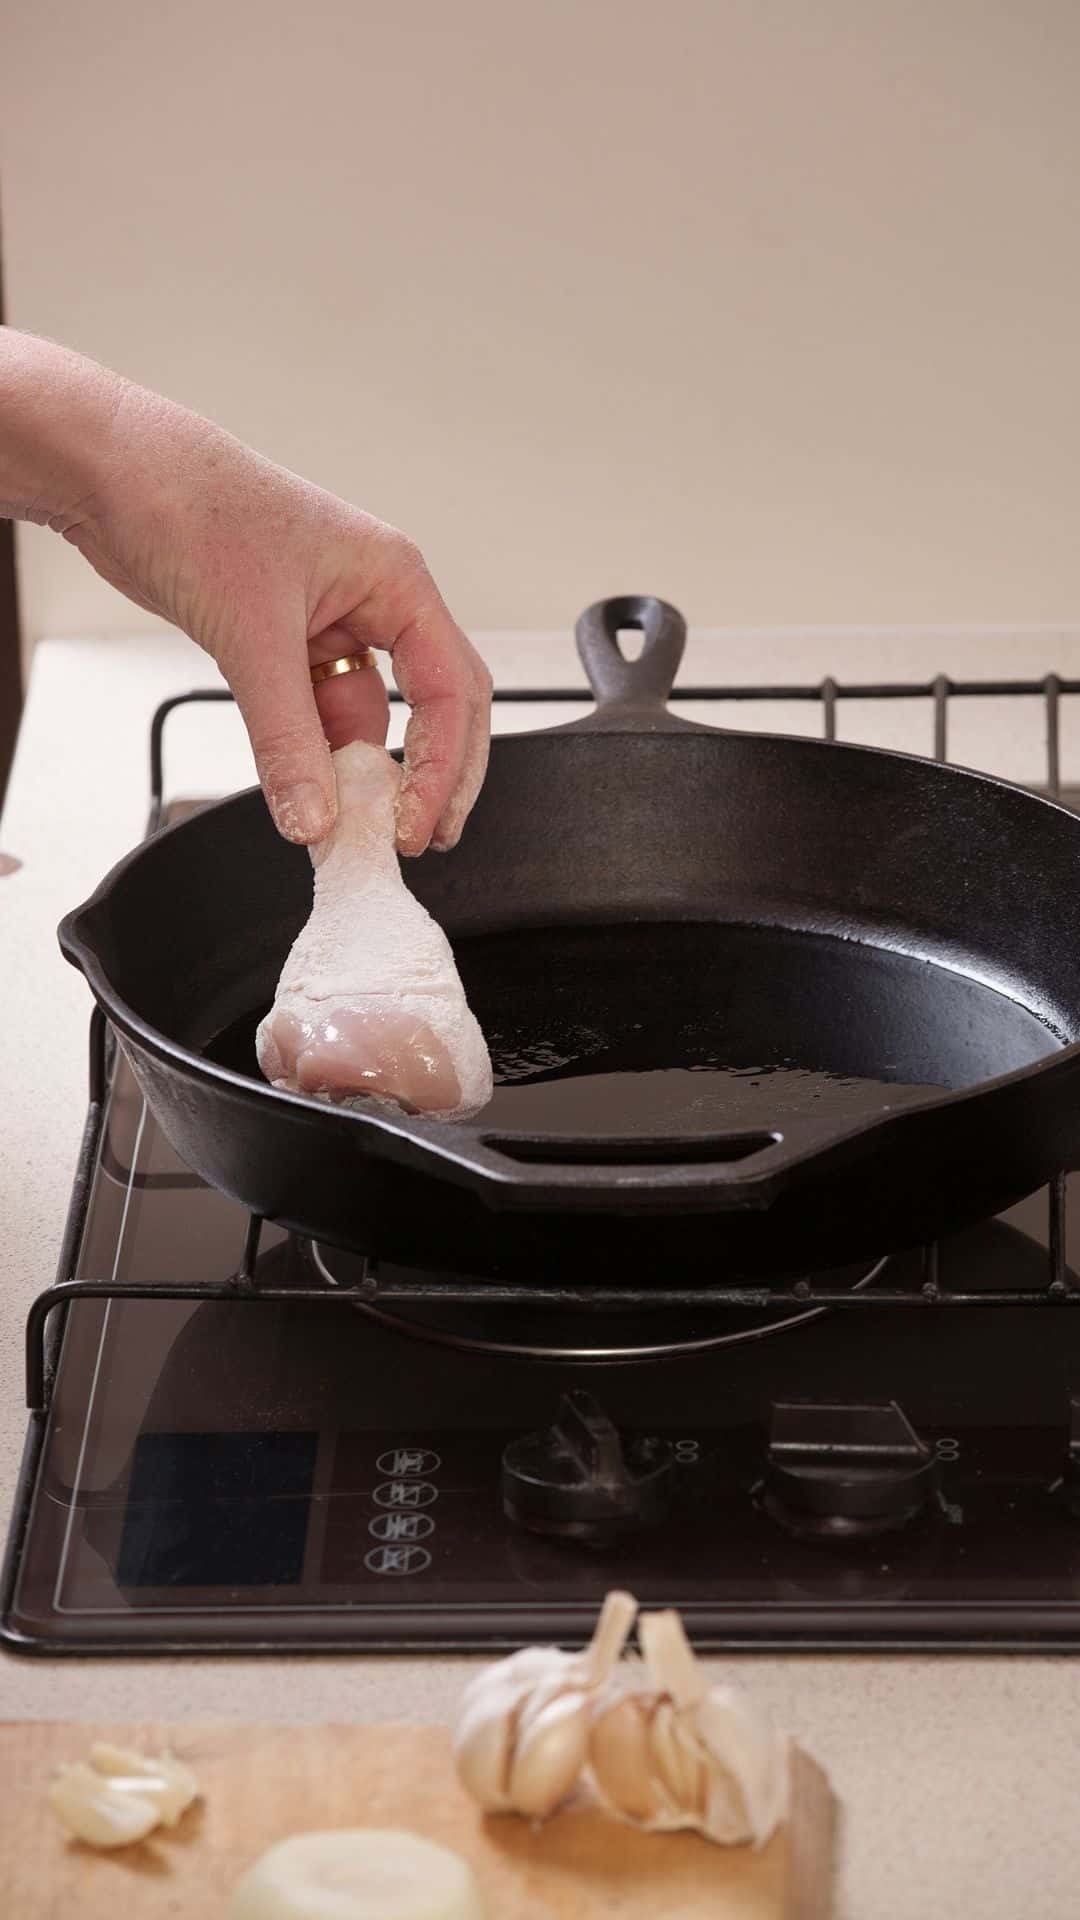 dropping breaded chicken into hot oil